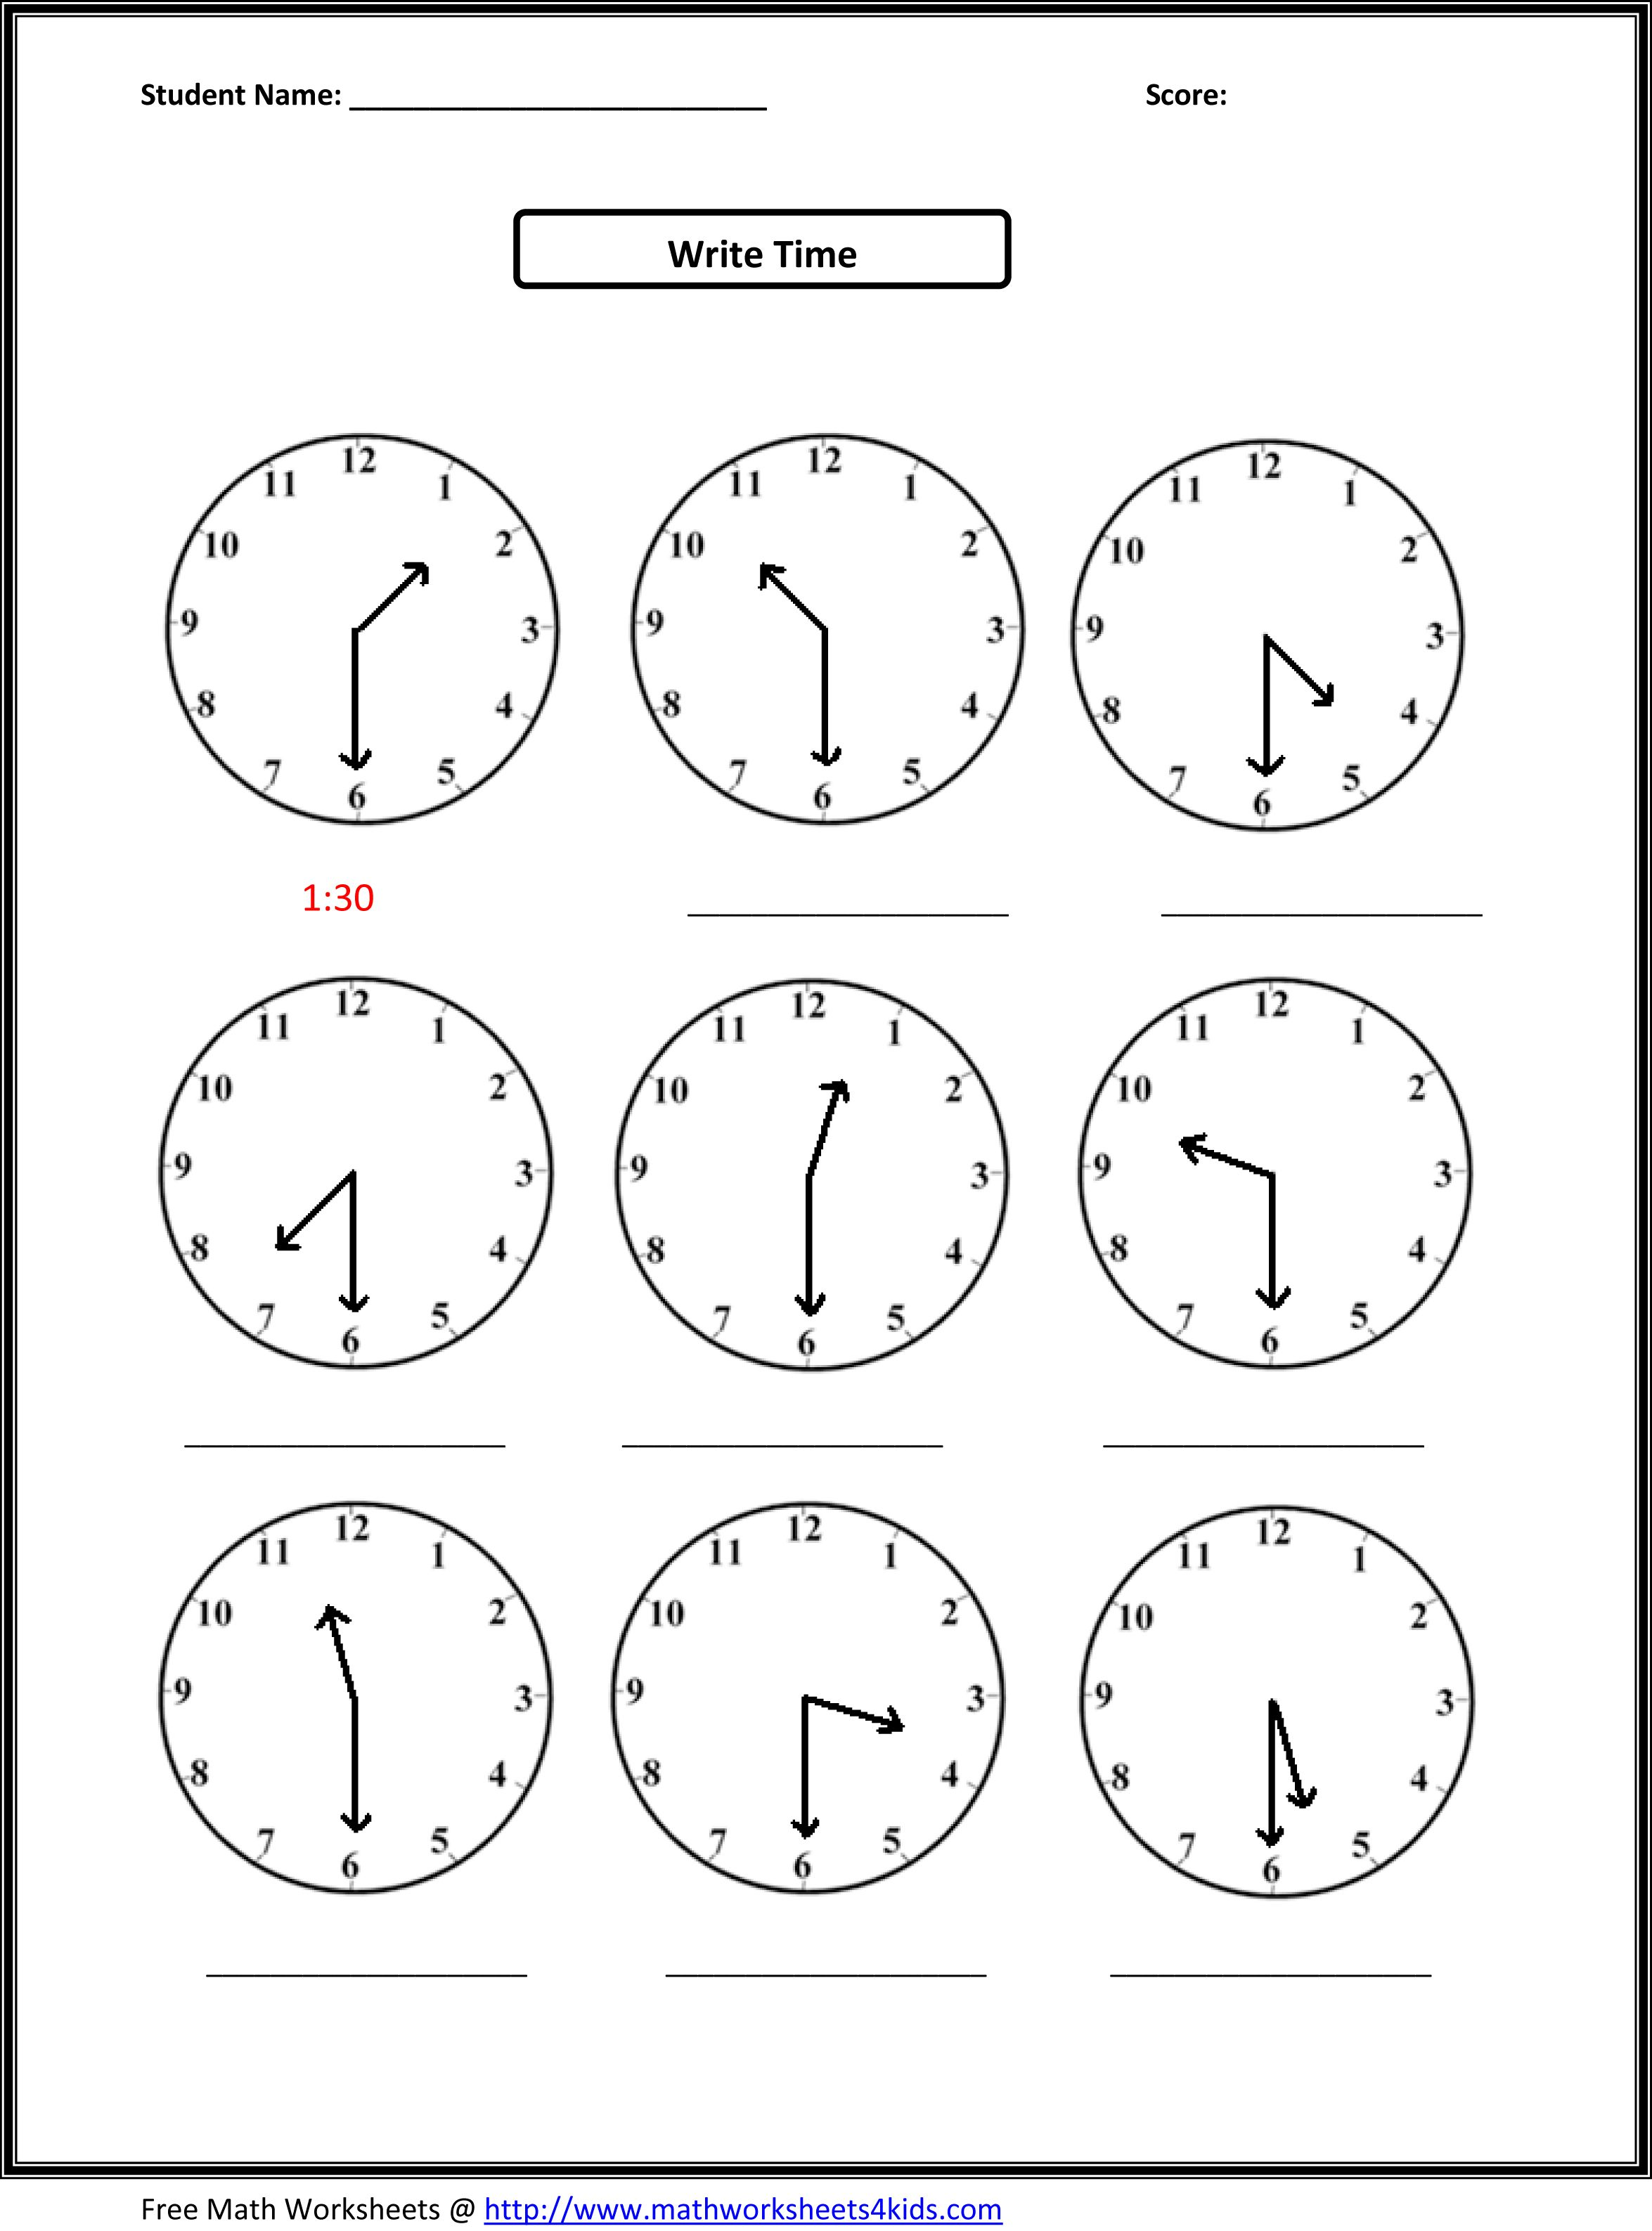 Weirdmailus  Marvellous Worksheet On Time For Grade   Reocurent With Excellent Free Printable Telling Time Worksheets Nd Grade  Reocurent With Beautiful Recount Worksheets Also Grade  Place Value Worksheets In Addition Finding Slope From A Graph Worksheets And Physical Education Worksheets For Elementary As Well As Pronouns Worksheets For Grade  Additionally Integers Worksheets For Grade  From Reocurentcom With Weirdmailus  Excellent Worksheet On Time For Grade   Reocurent With Beautiful Free Printable Telling Time Worksheets Nd Grade  Reocurent And Marvellous Recount Worksheets Also Grade  Place Value Worksheets In Addition Finding Slope From A Graph Worksheets From Reocurentcom